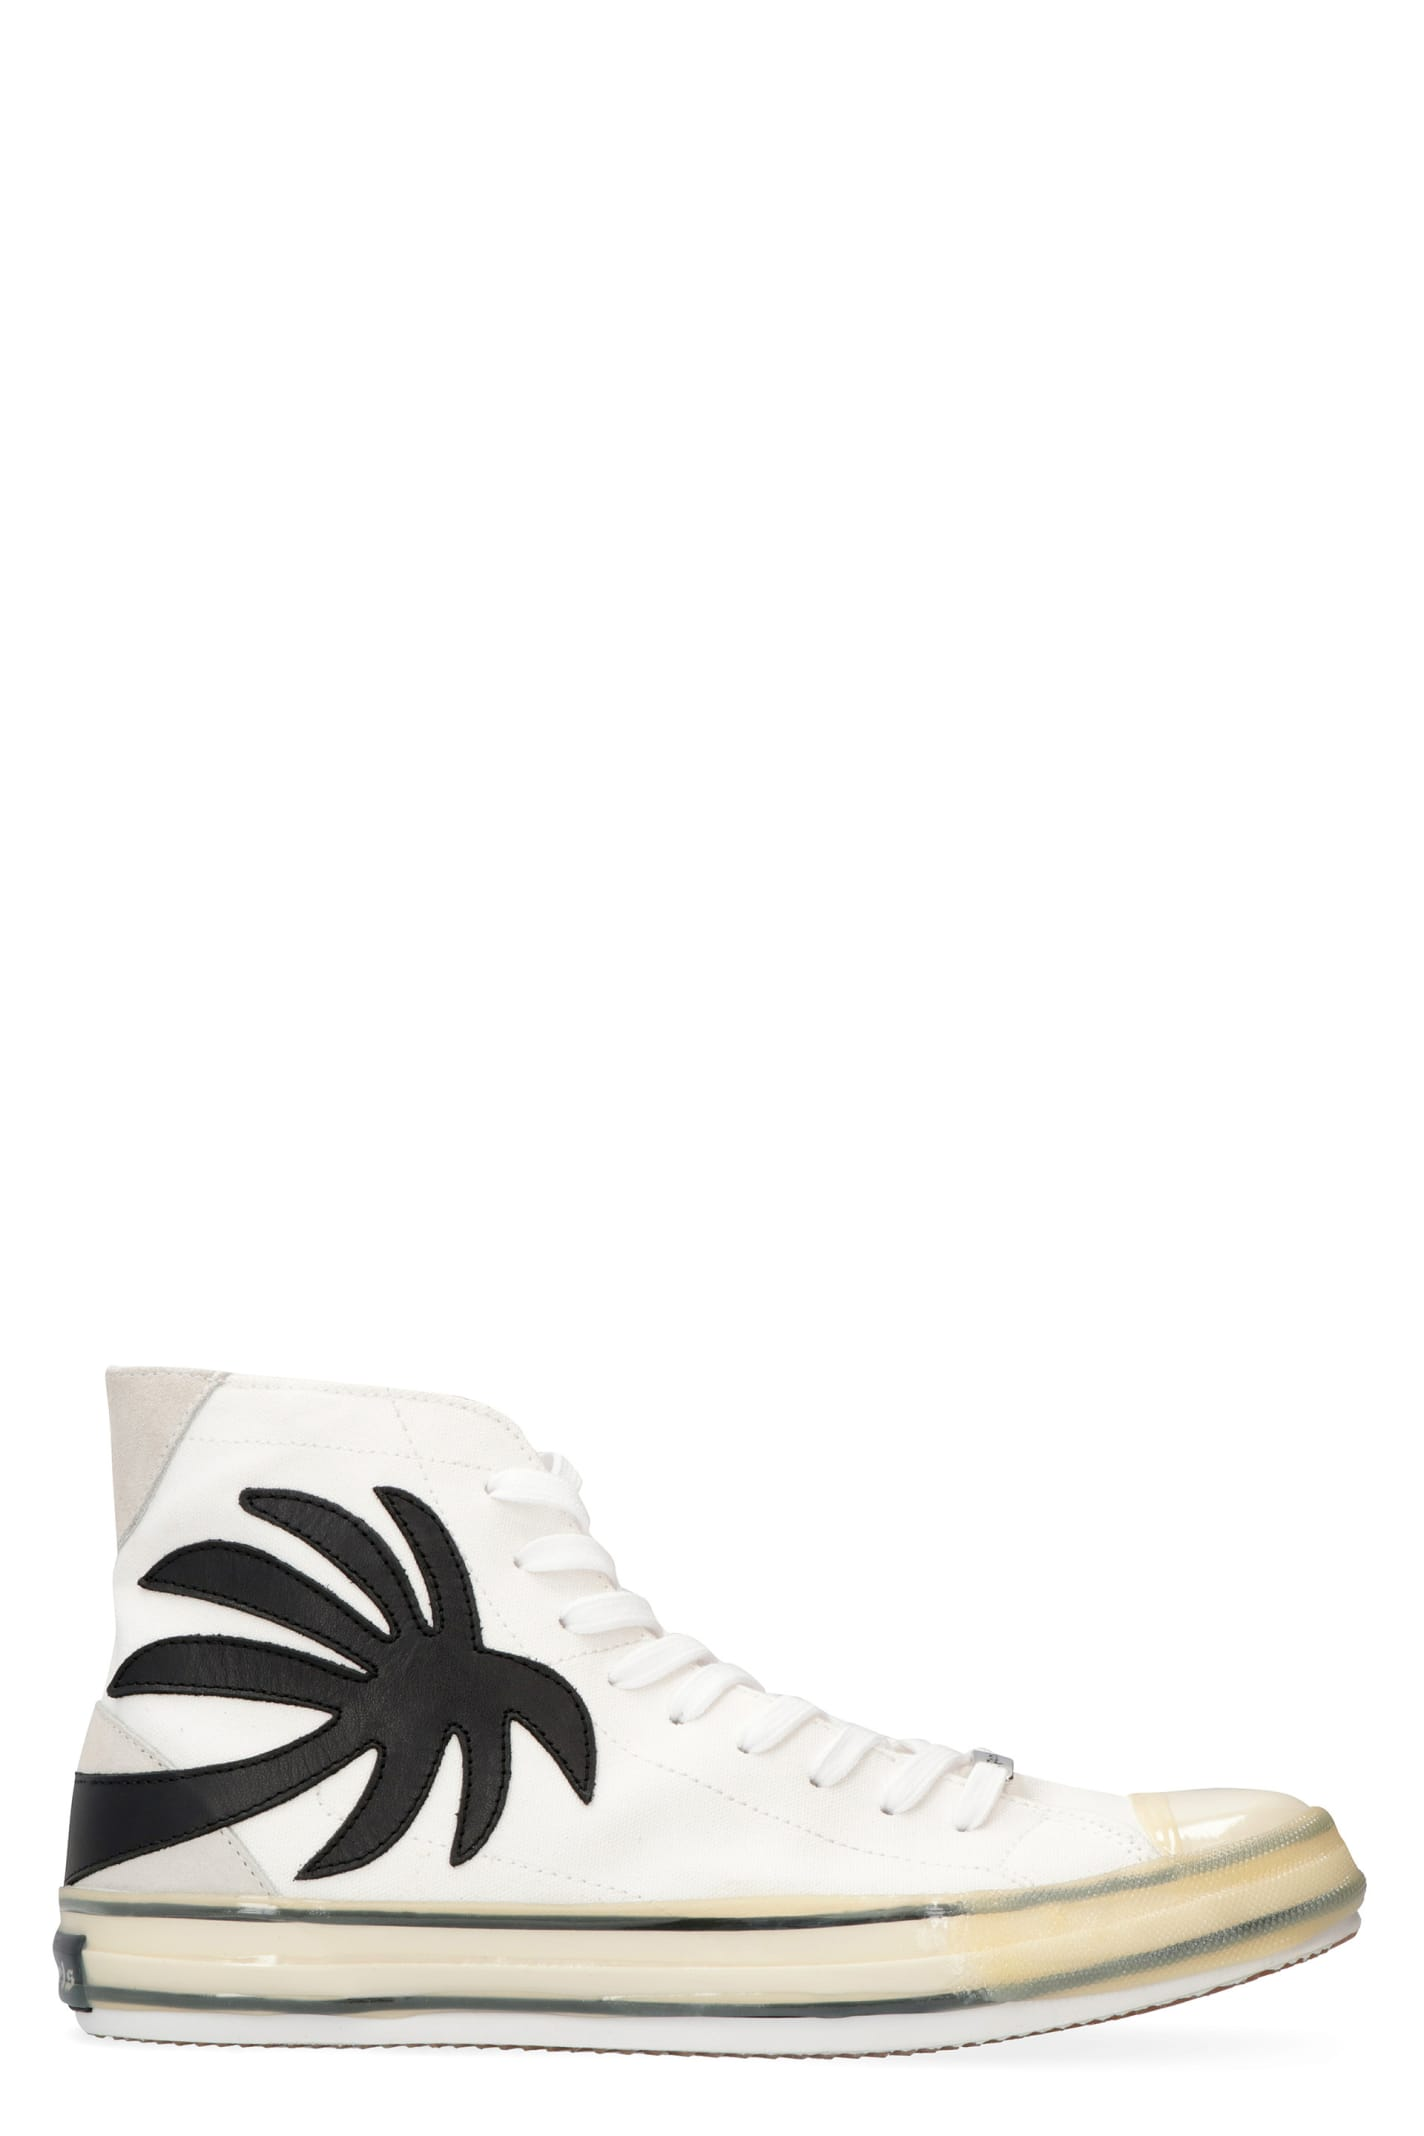 Palm Angels Leathers CANVAS HIGH-TOP SNEAKERS